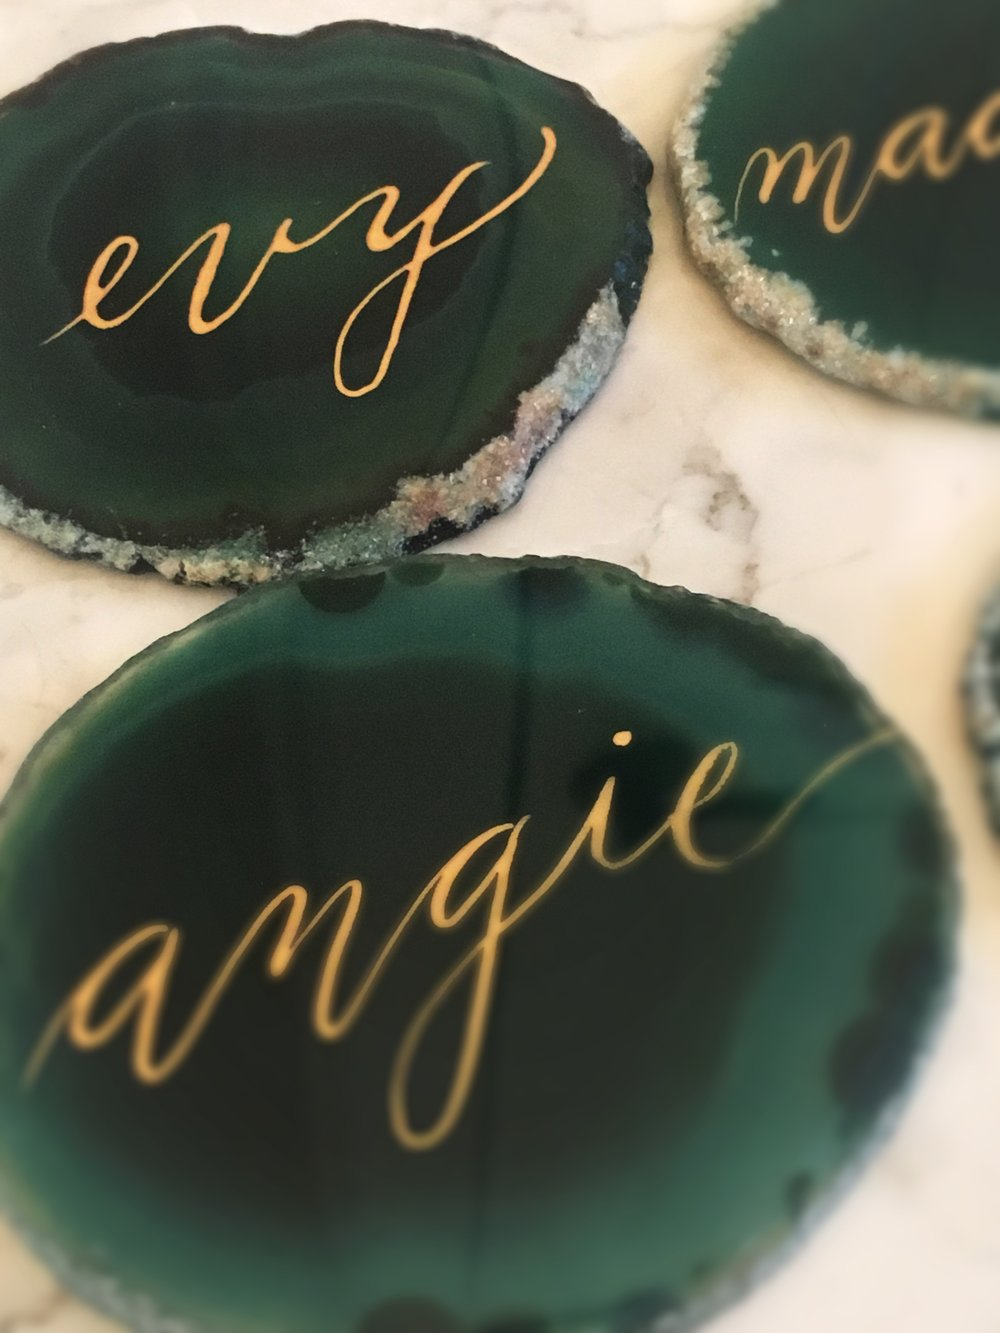 Green Agate Stone Calligraphy Houston Hand Lettering